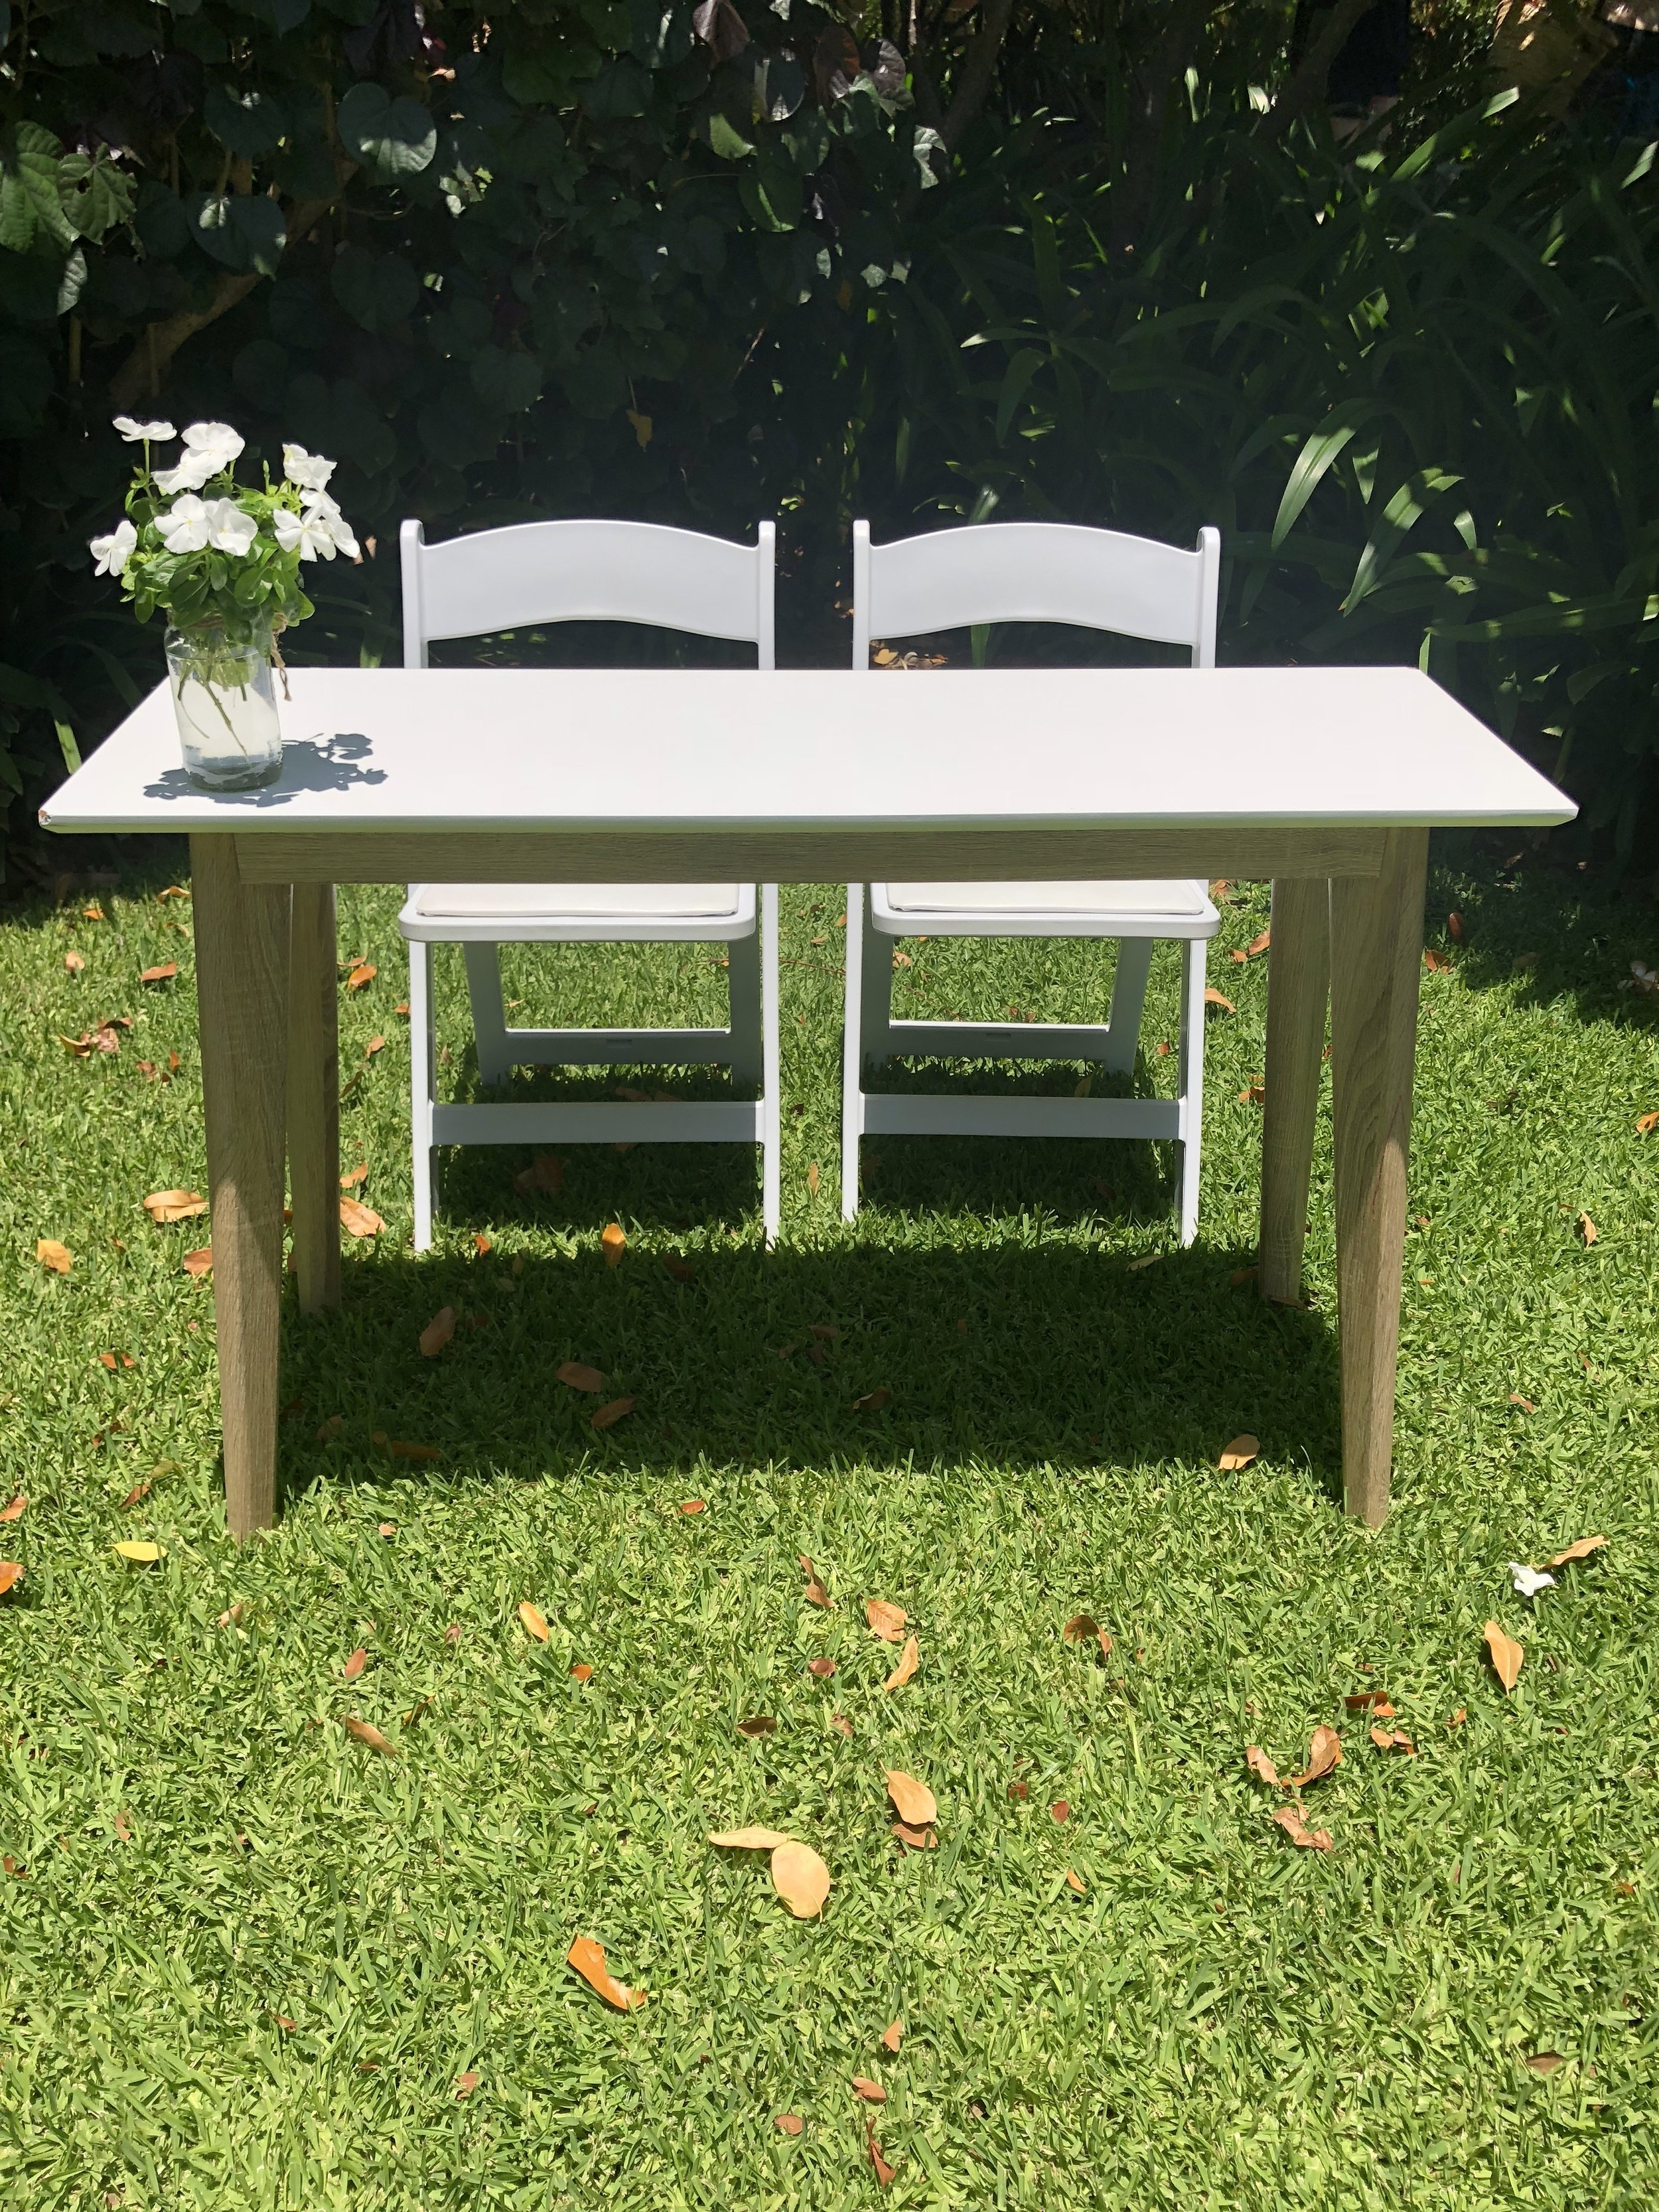 White signing table: $70 - Chairs $10 each